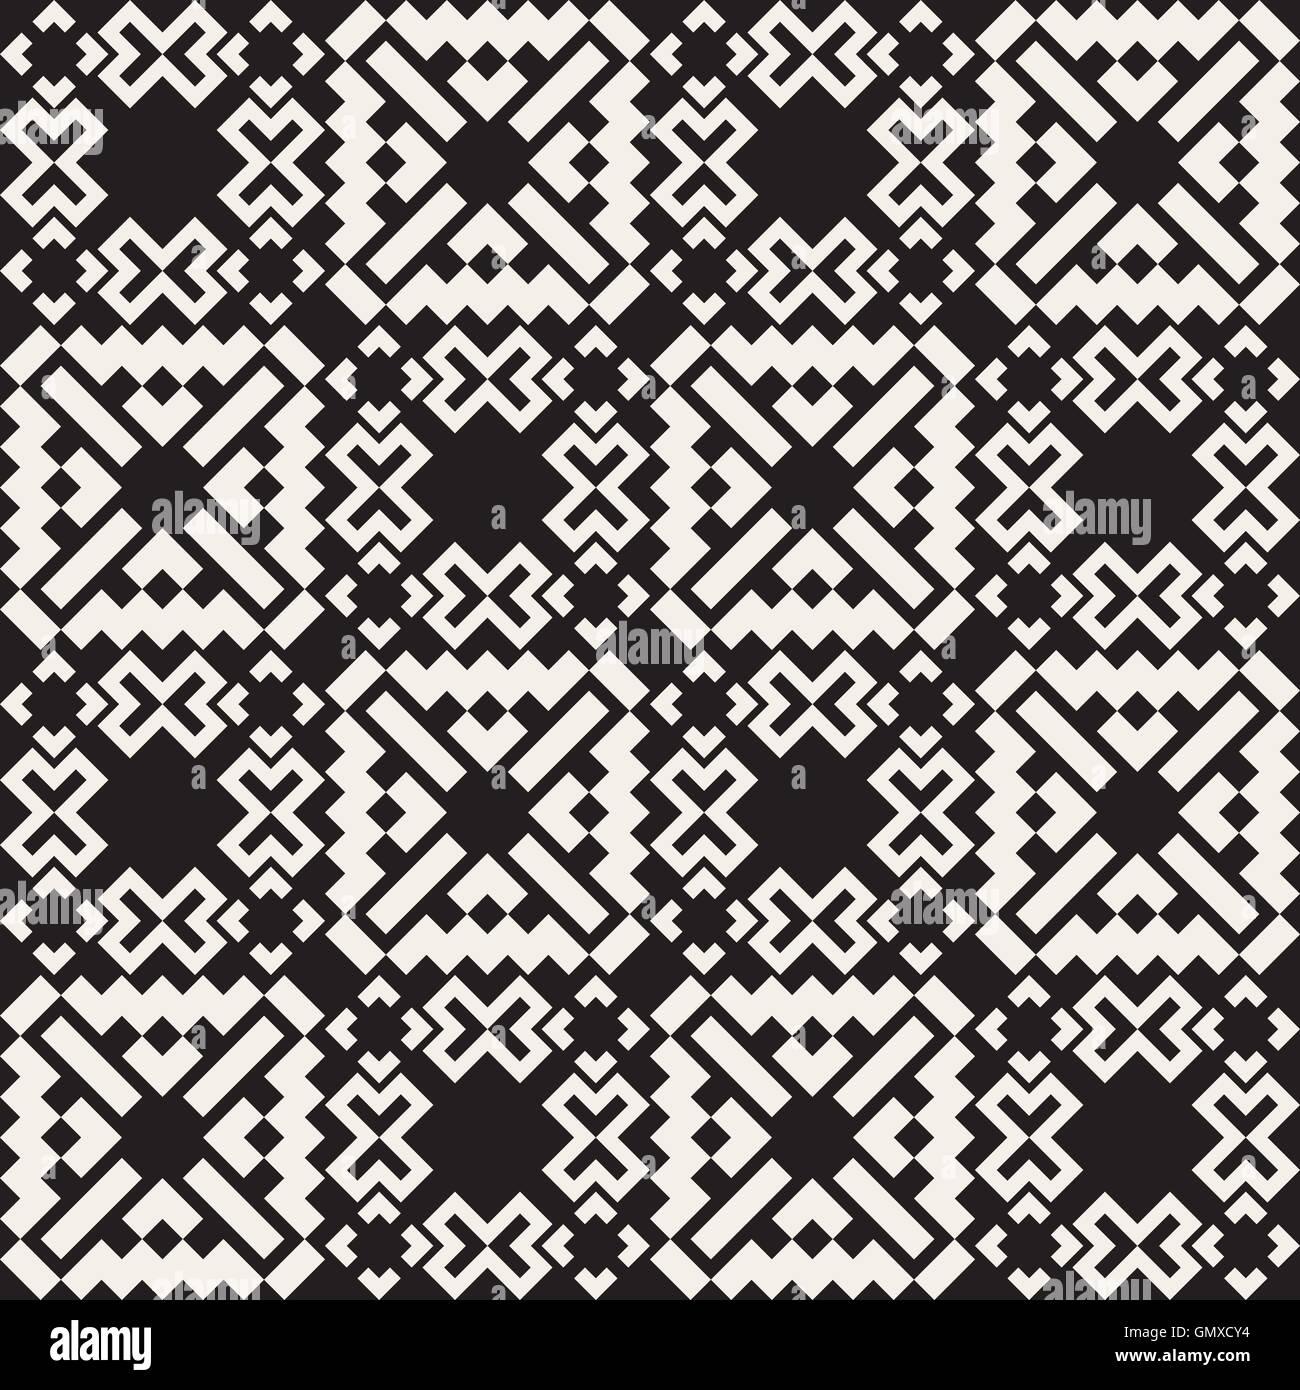 Vector seamless black and white simple cross square ethnic quilt pattern